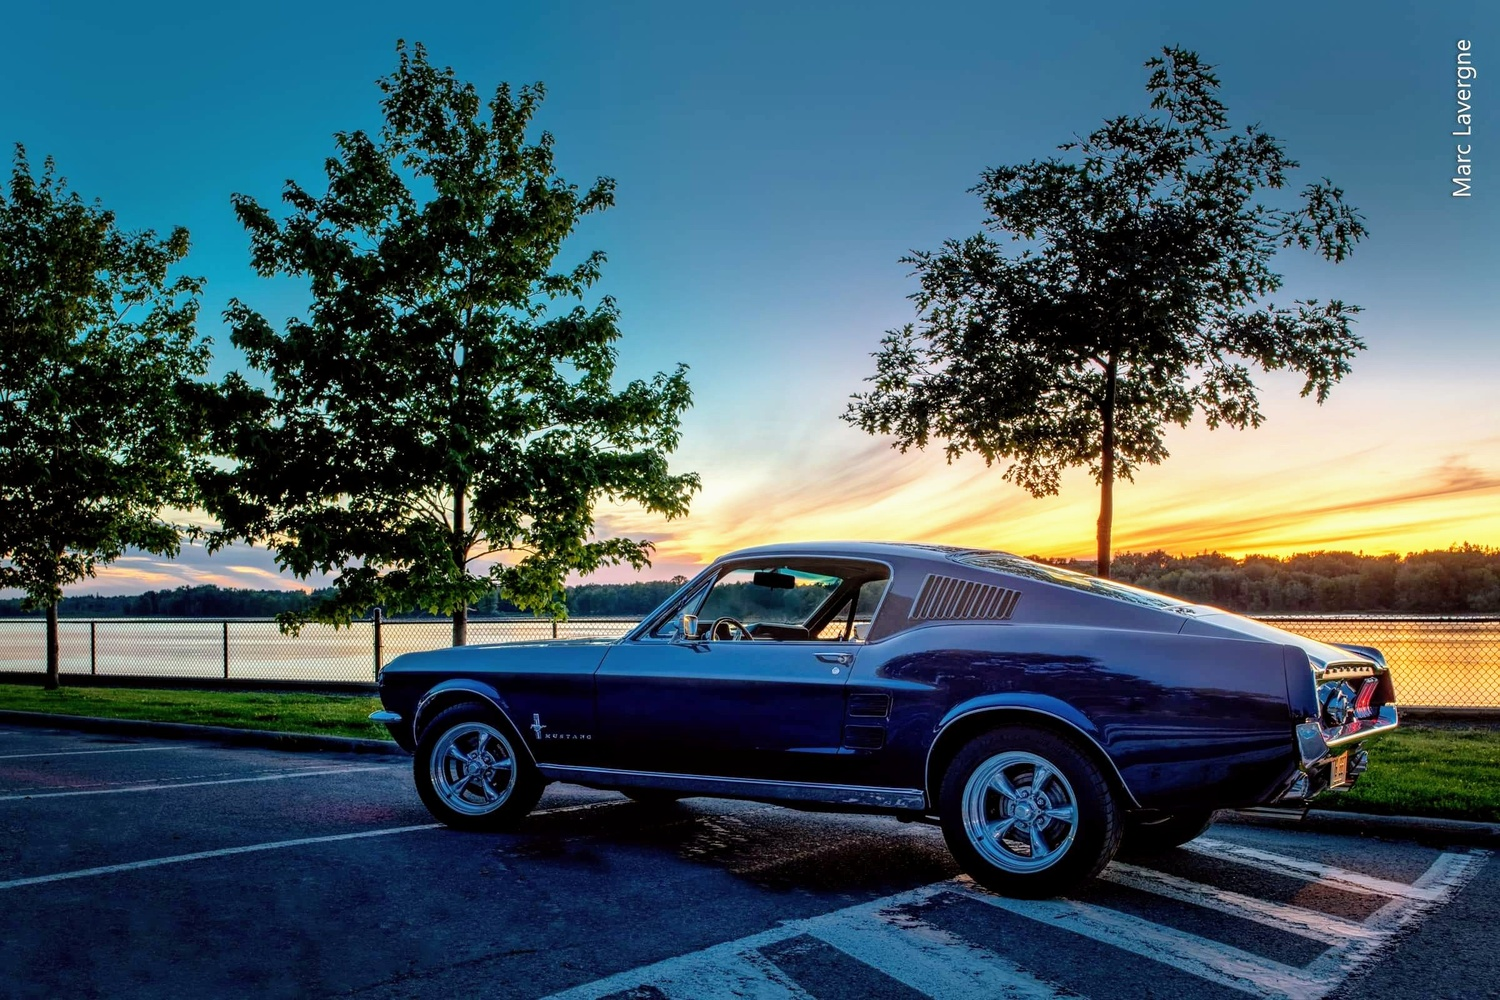 1967 Mustang by Mark Mann